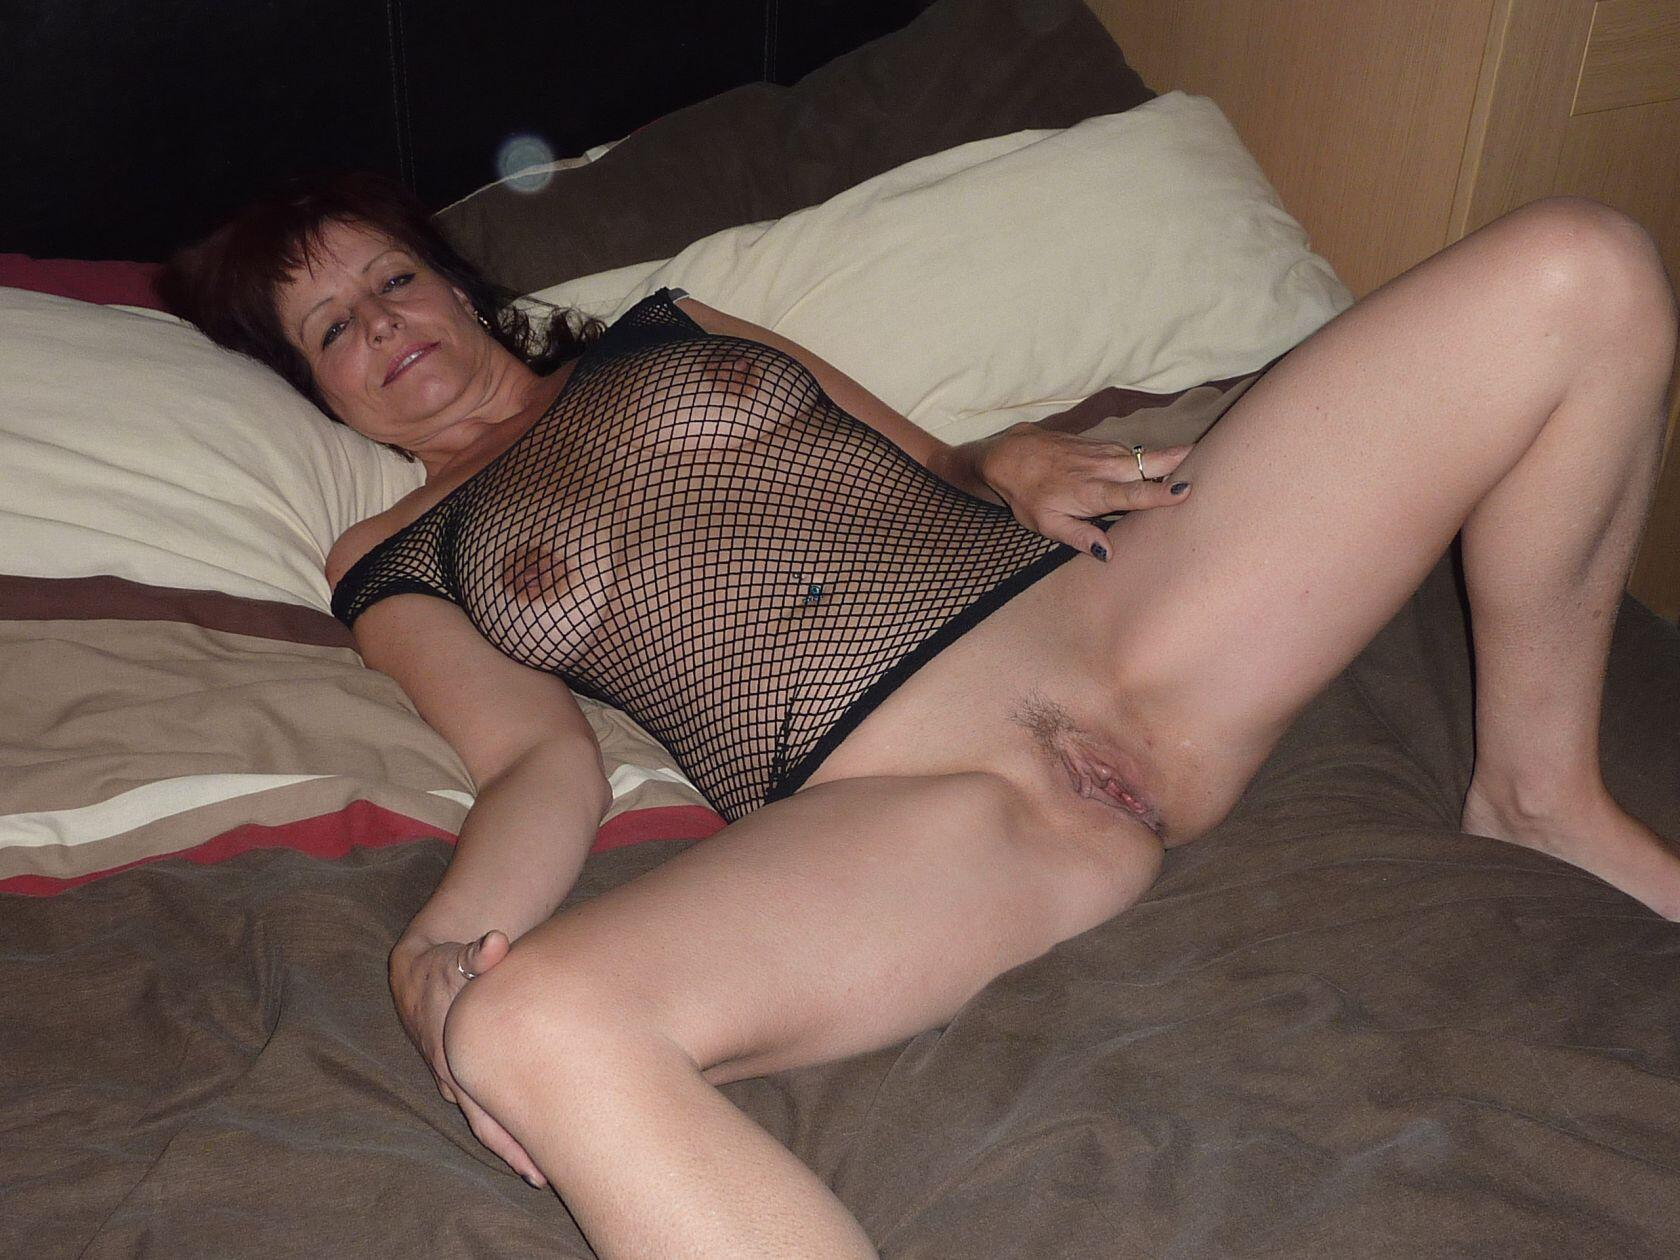 Real Amateurs No Panties Pics MILF Flashing Pics Mature Flashing Pics Hotwife Pics Bitch Flashing Pics